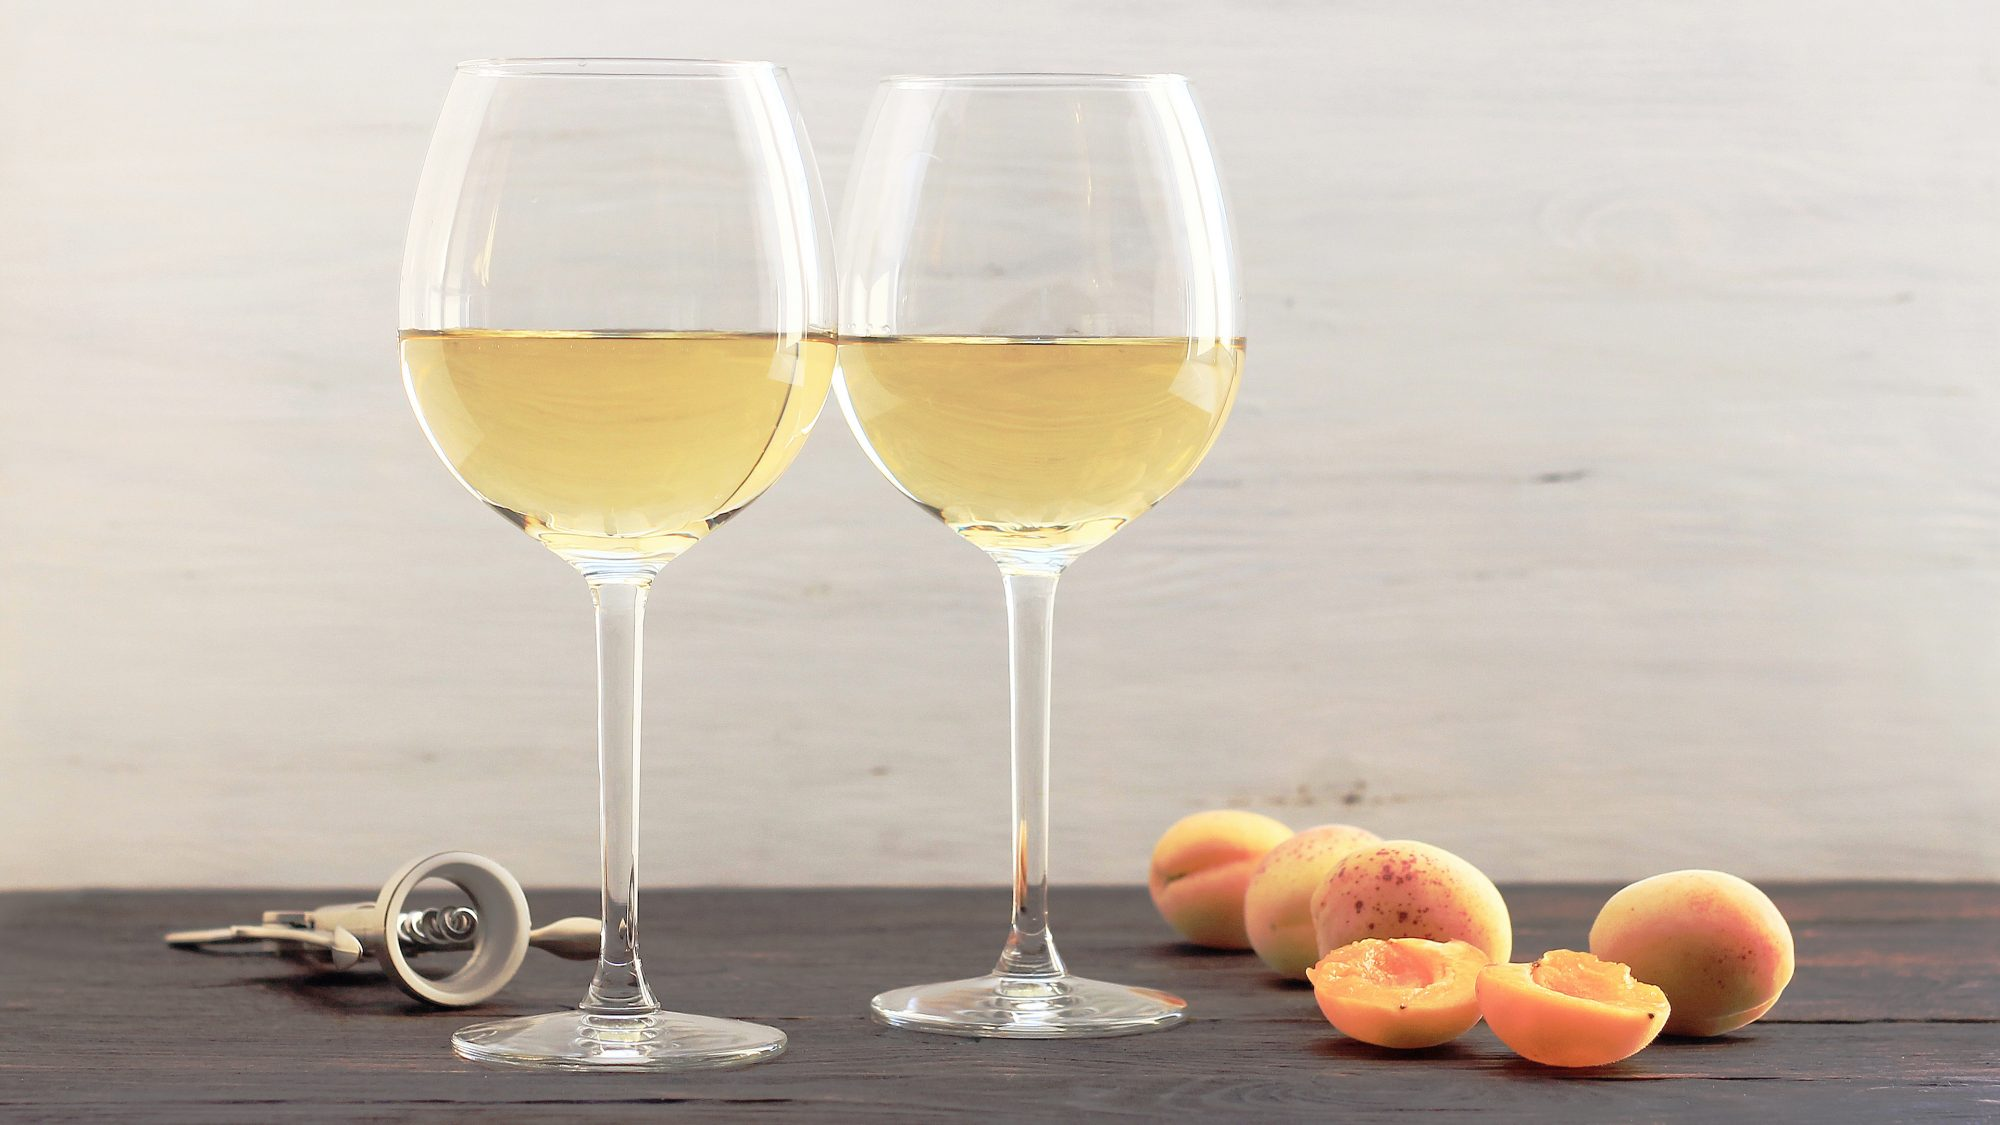 low-alcohol-wine: two glasses of white wine